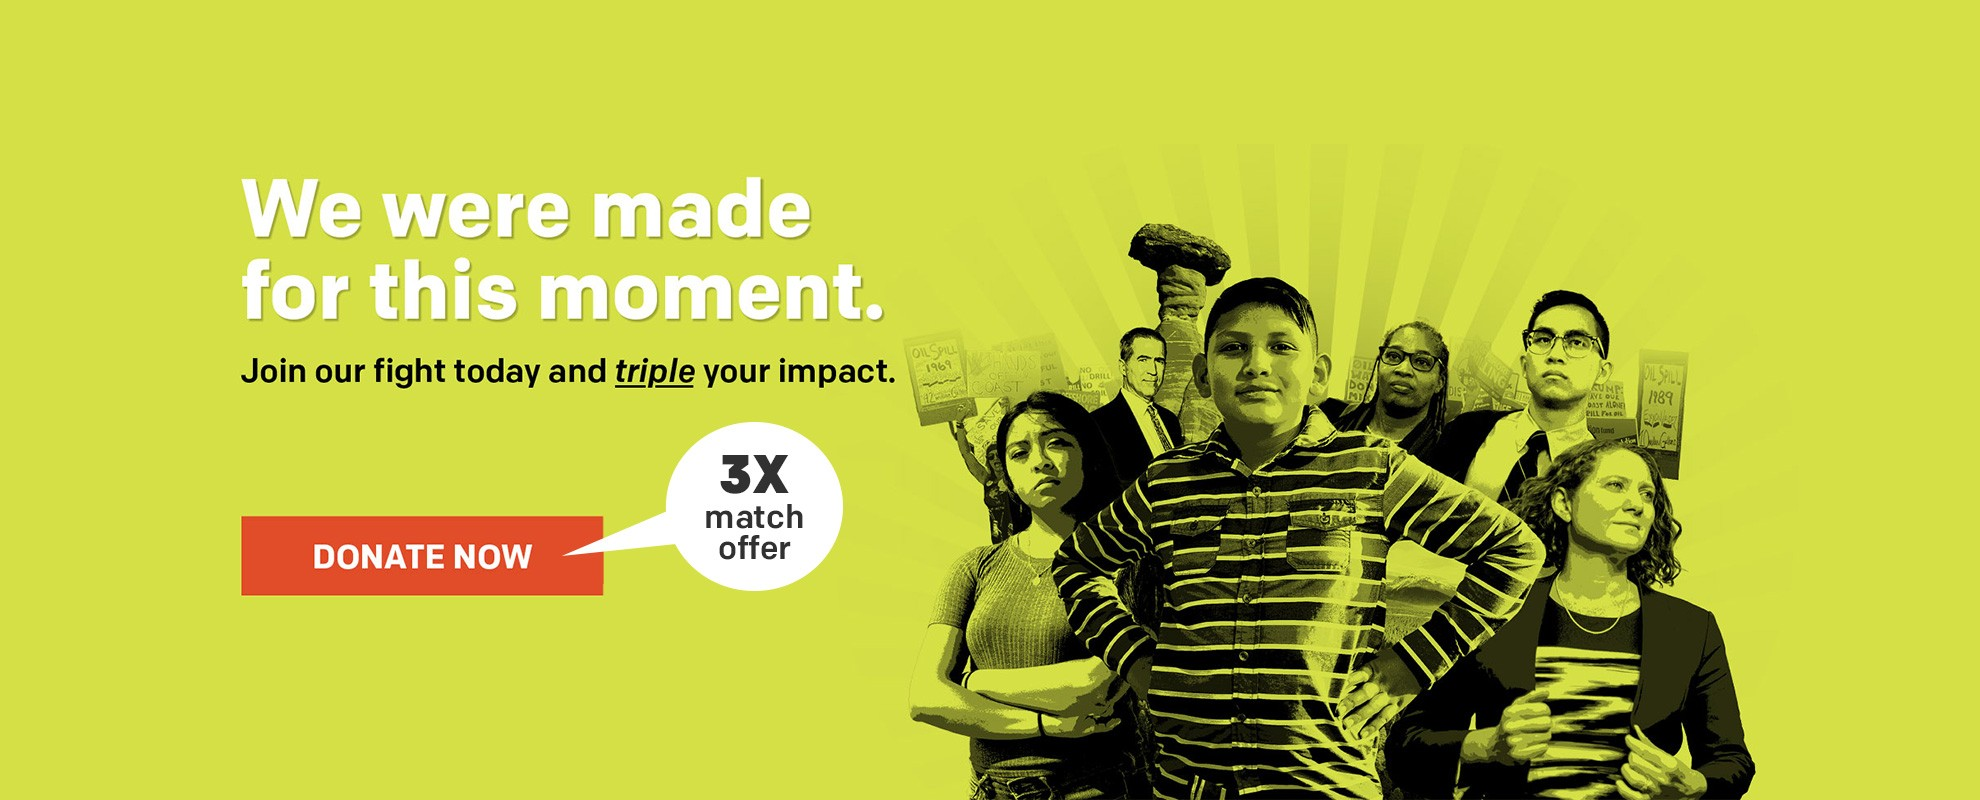 We were made for this moment. Join our fight, and triple your impact.